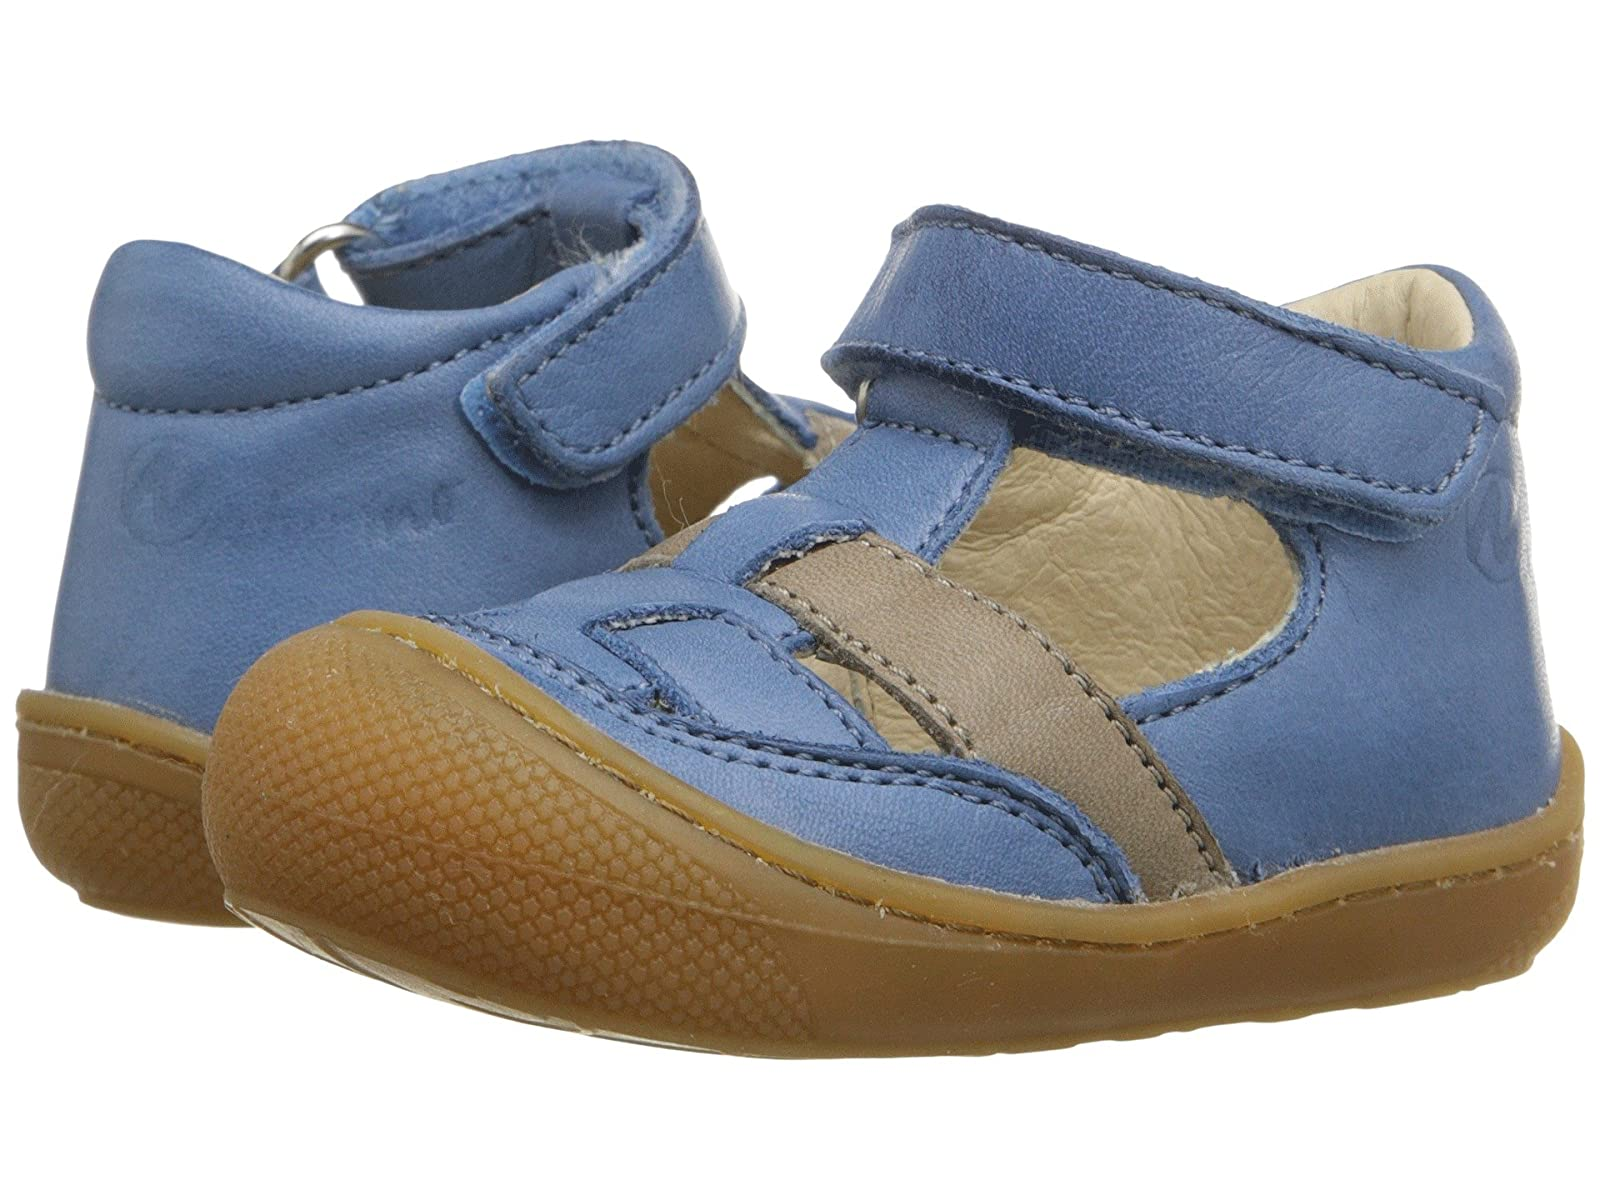 Naturino Nat. 3997 SS16 (Toddler)Cheap and distinctive eye-catching shoes